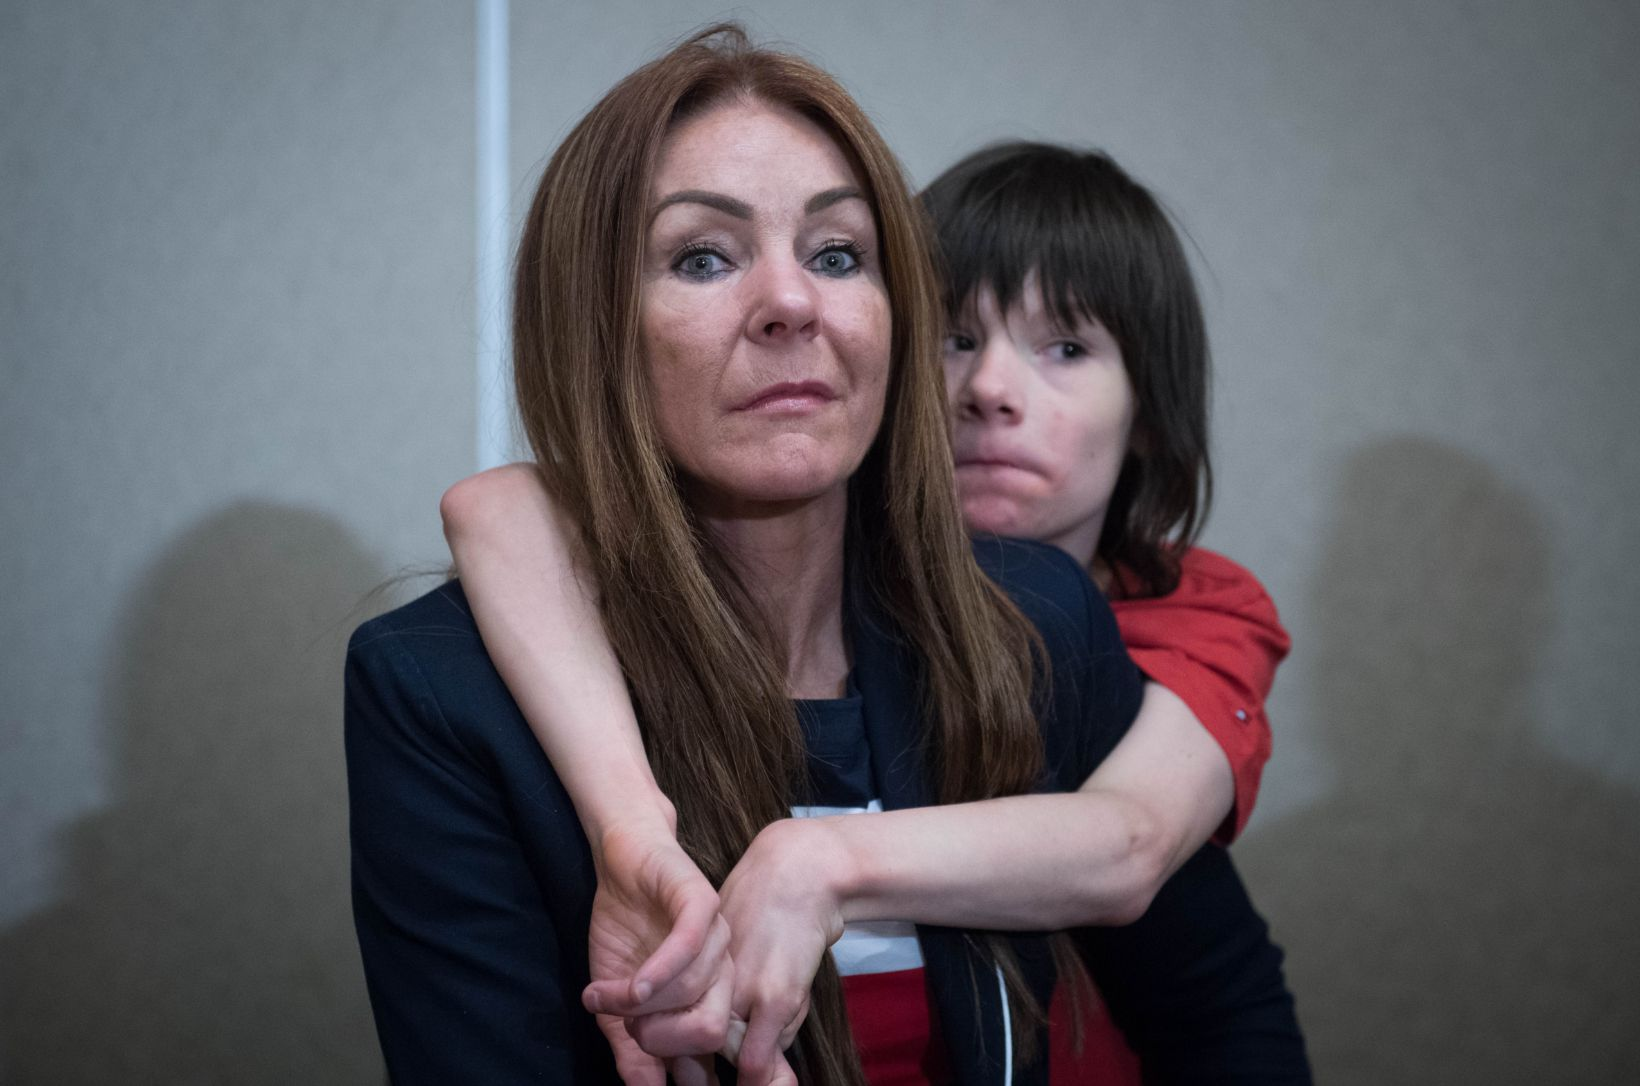 Billy Caldwell: Home Office Returns Cannabis Oil Prescription To Epileptic Boy With 'Life-Threatening' Seizures